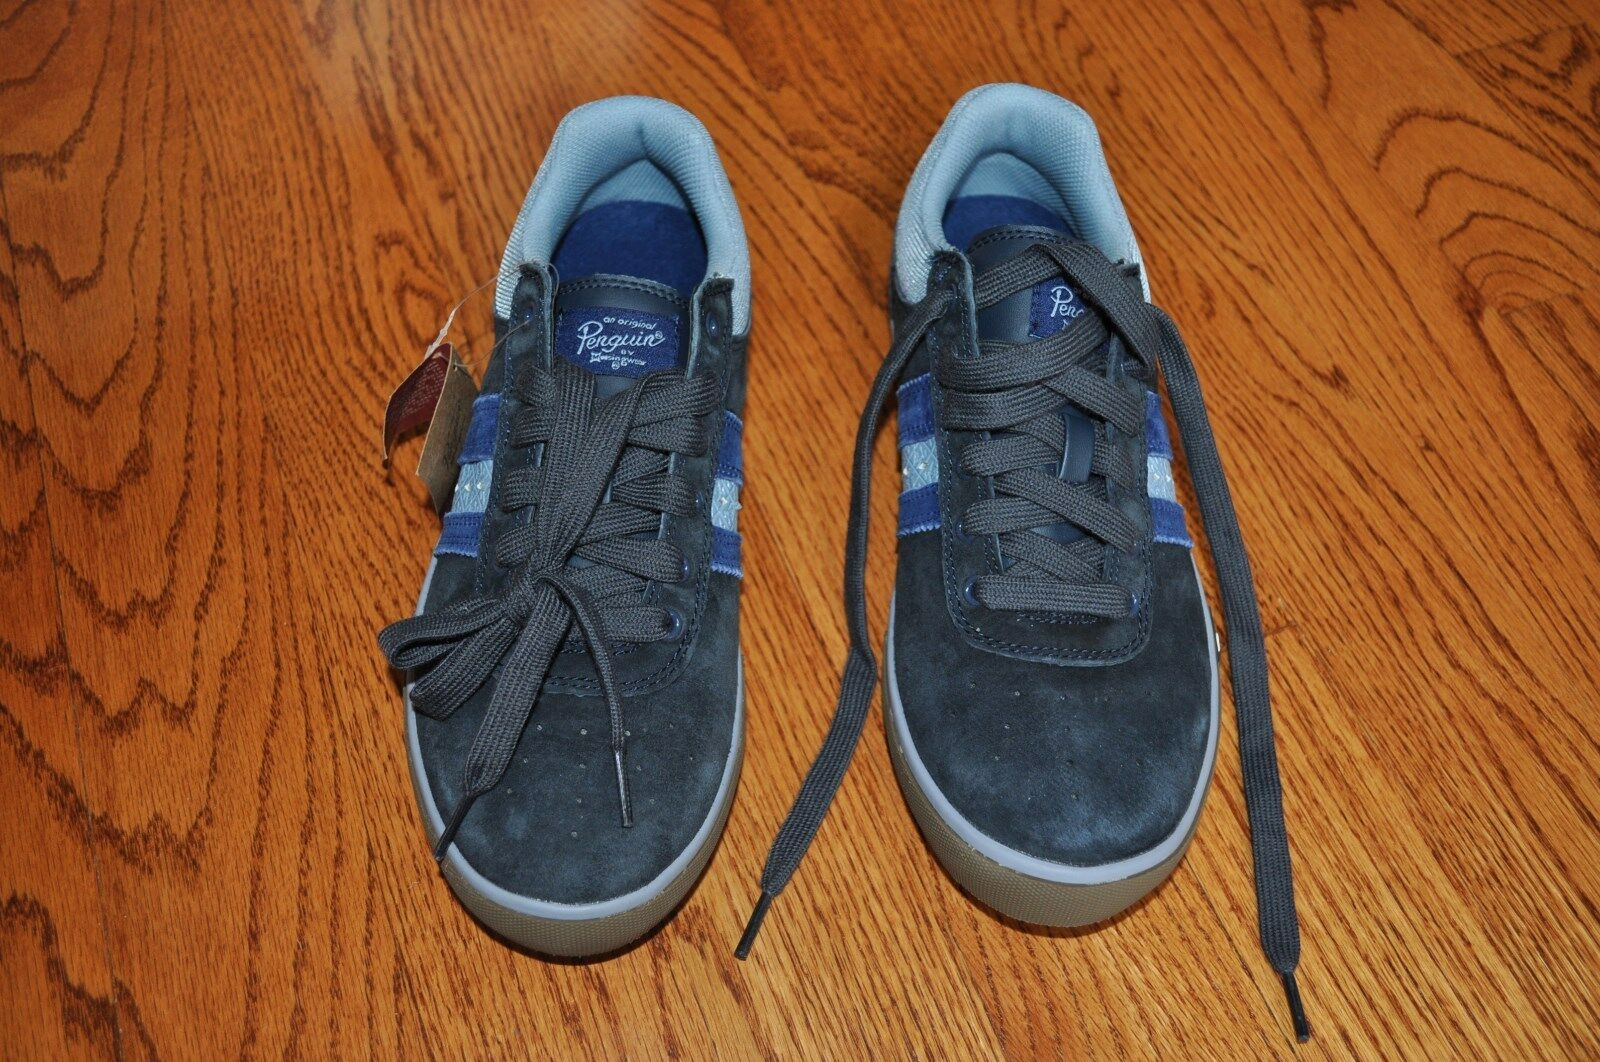 NWT!! Uomo PENGUIN Navy Blue Suede Athletic Shoes Size 8 M!!